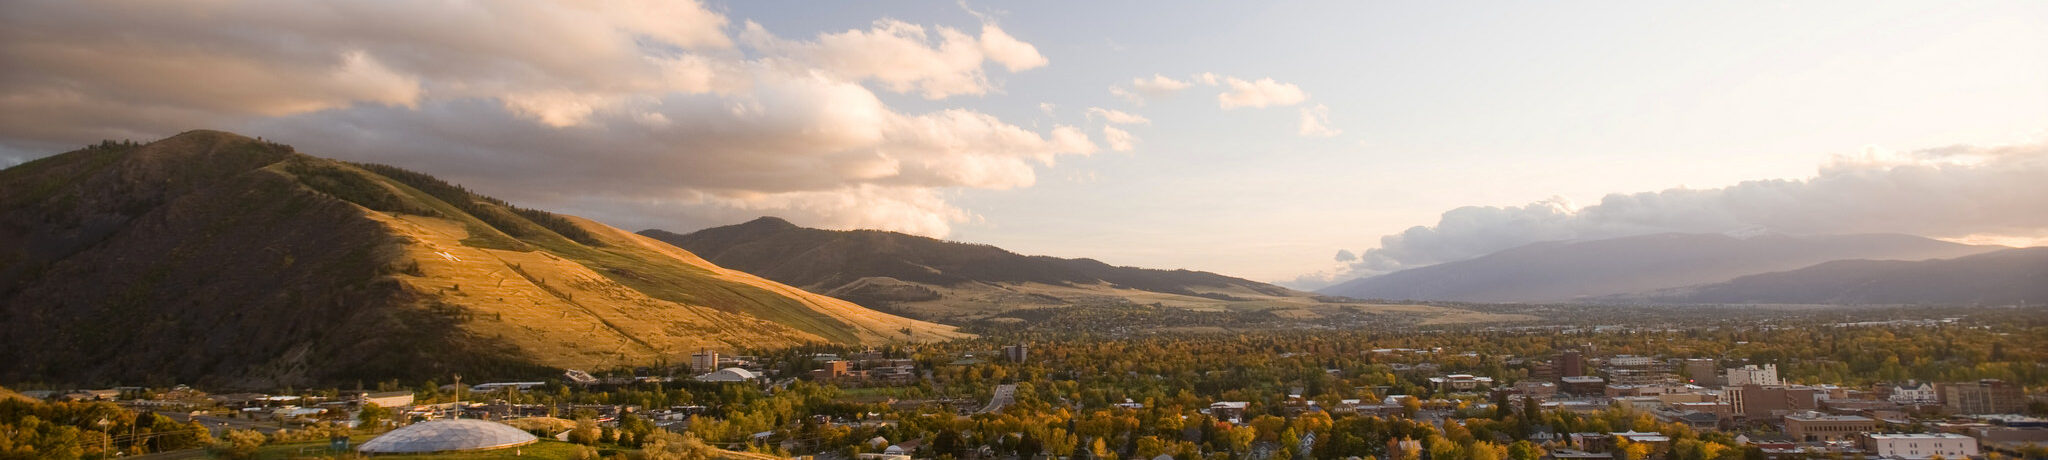 View of Missoula and Mt. Sentinel